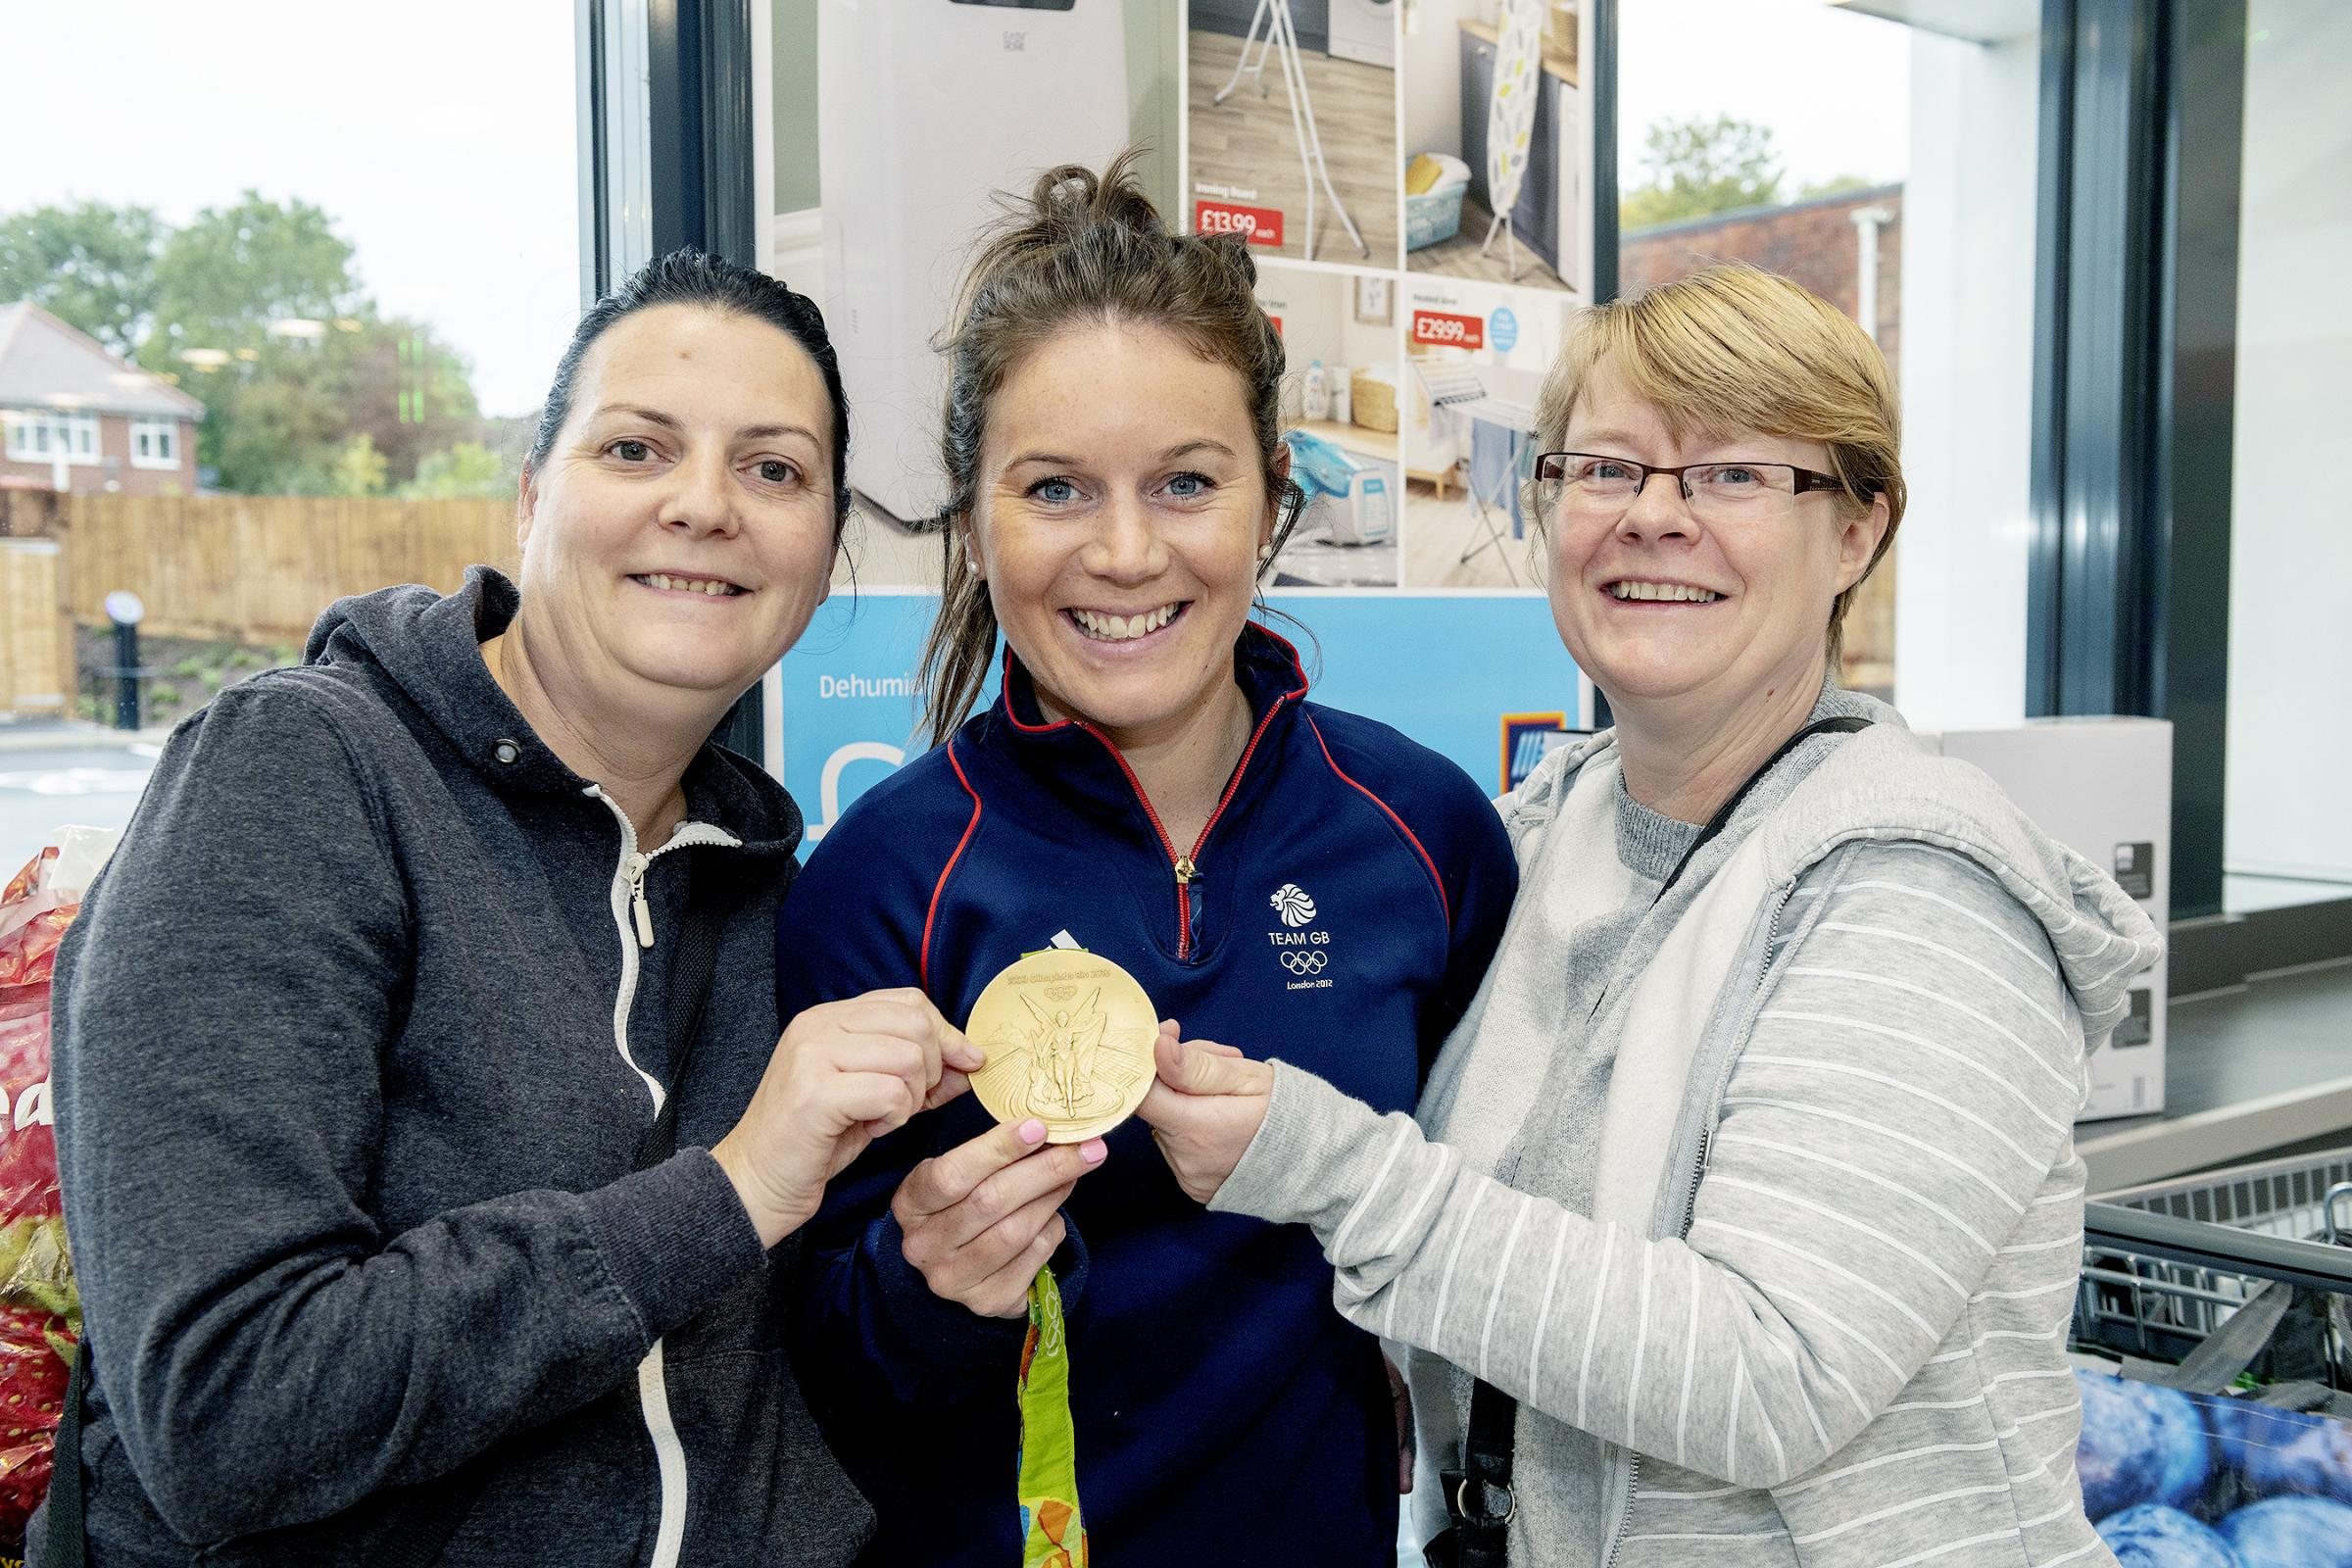 PHOTOGRAPH BY RICHARD GRANGE / UNP (United National Photographers).20 SEPTEMBER 2018. ALDI, THORNS ROAD, LYE. DY9 8ELThe new Aldi store opens with Manager Marius Smyman and help from Team GB Hockey player Laura Unsworth who poses with shoppers Zoe Hol